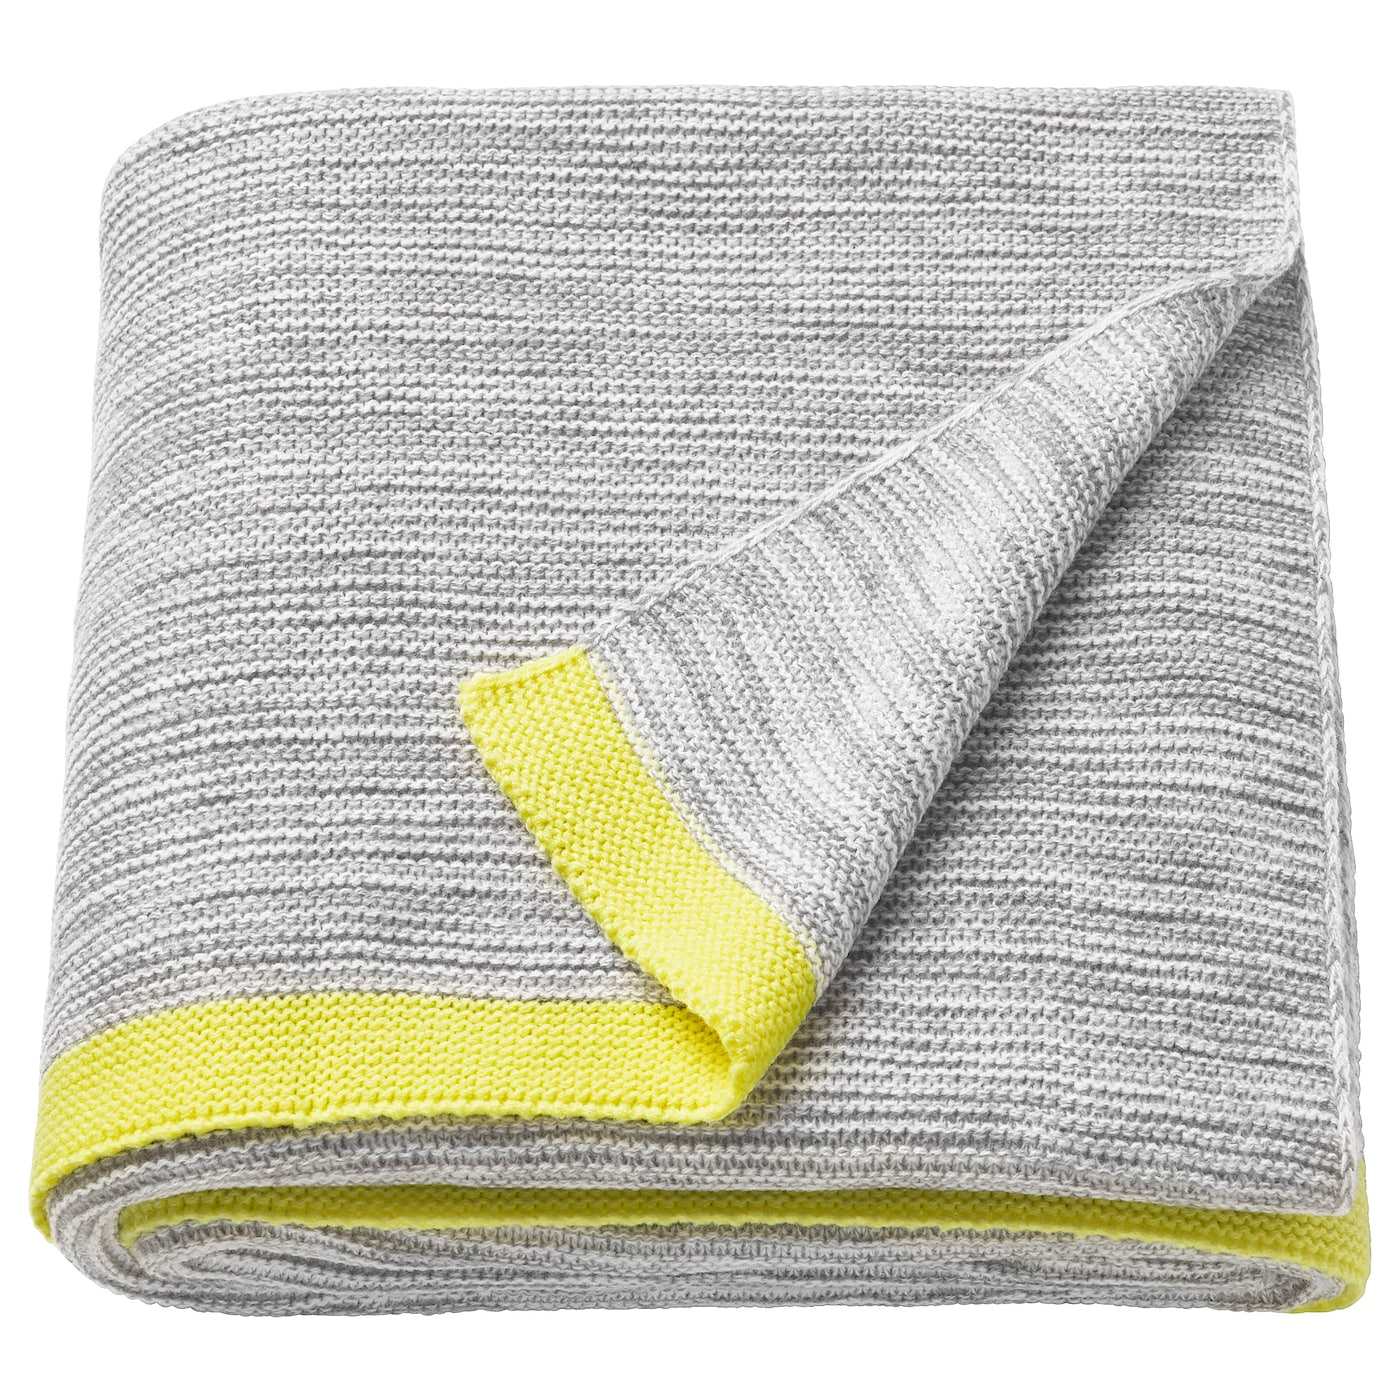 IKEA LISAMARI throw